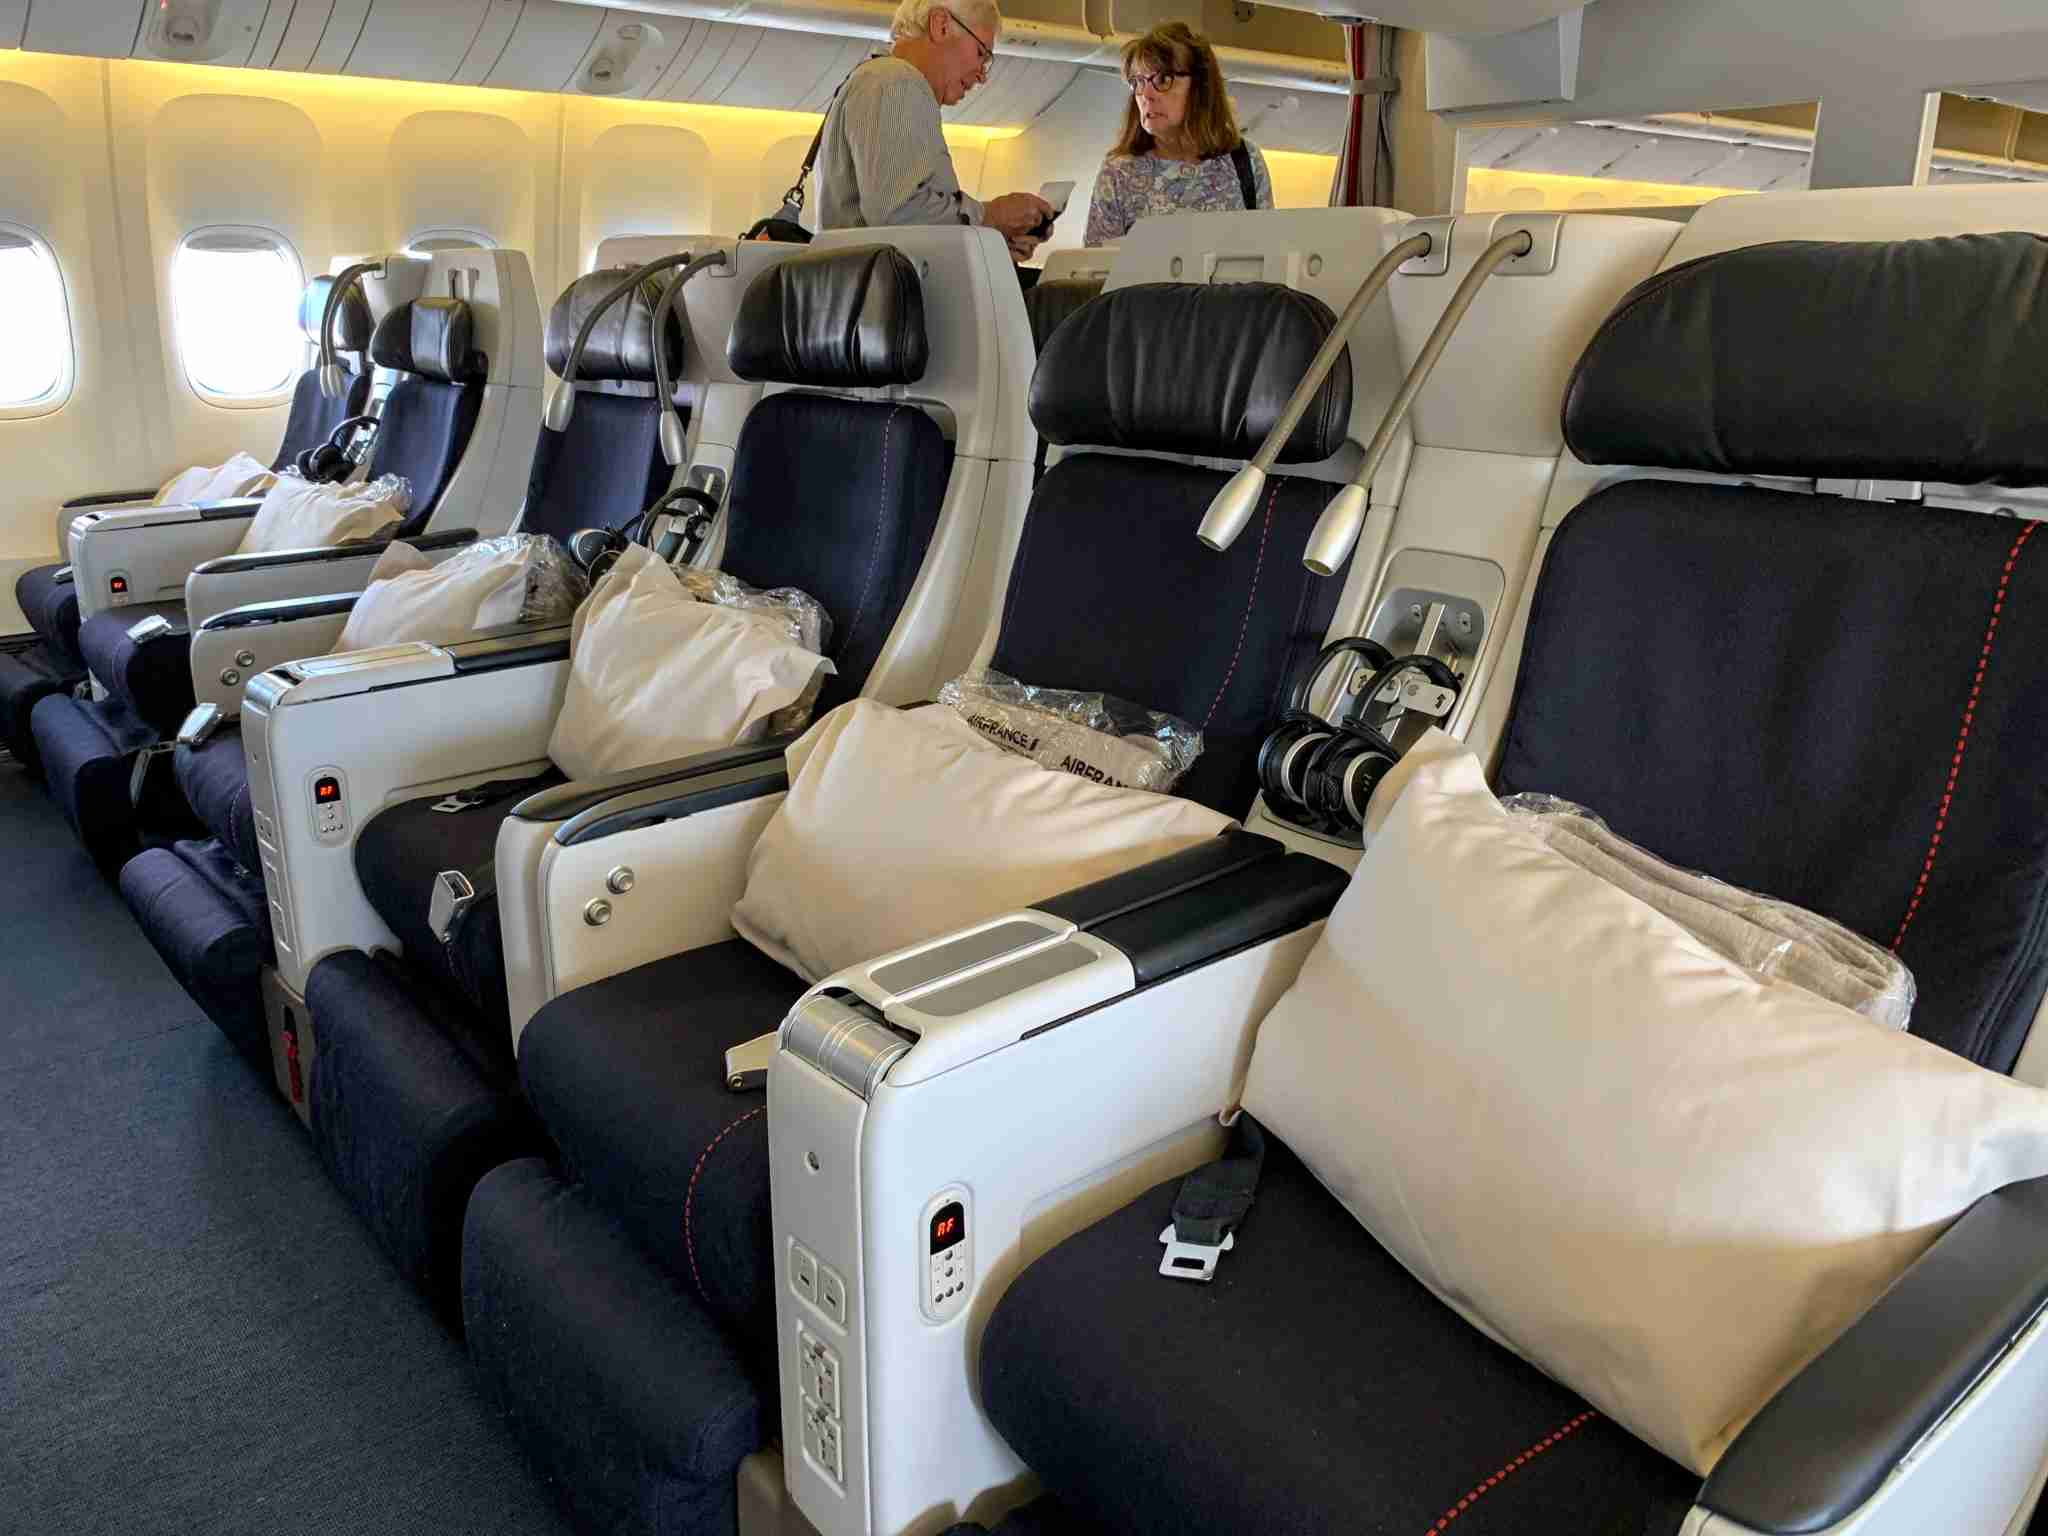 Air France Boeing 777-200 Premium Economy bulkhead row